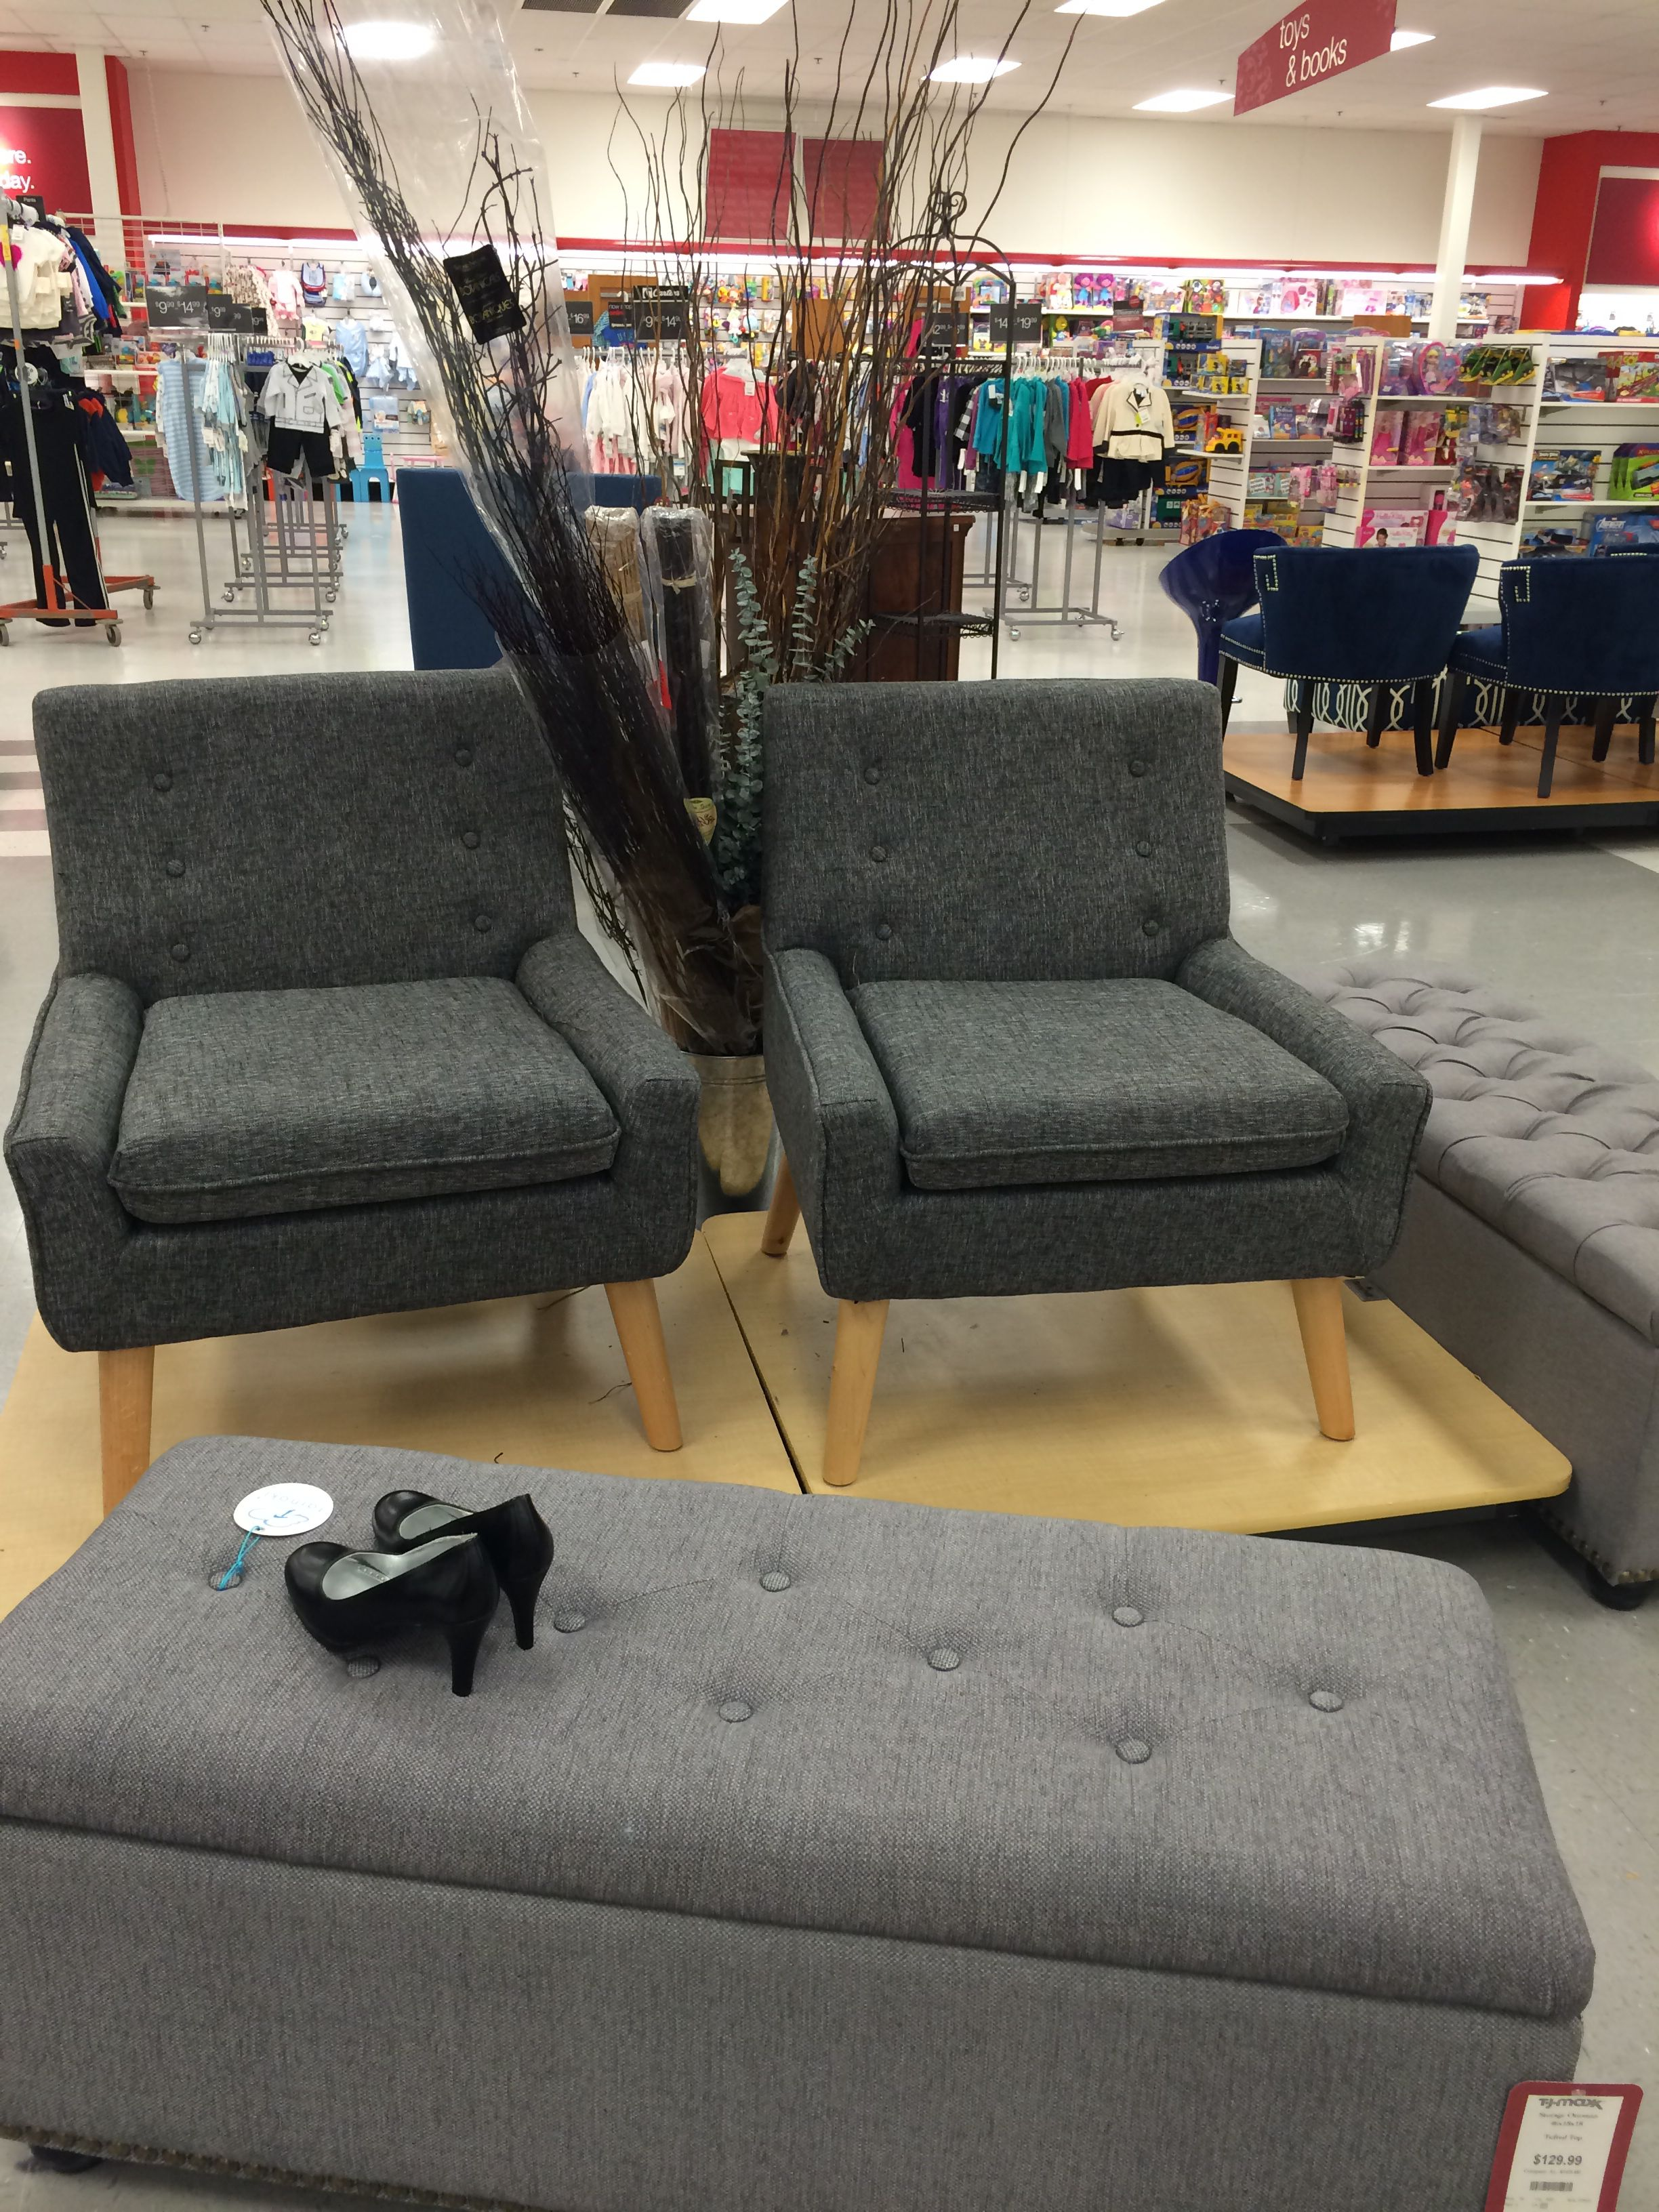 Chairs And Ottoman At Tj Maxx In Alsip Illinois For Our Home